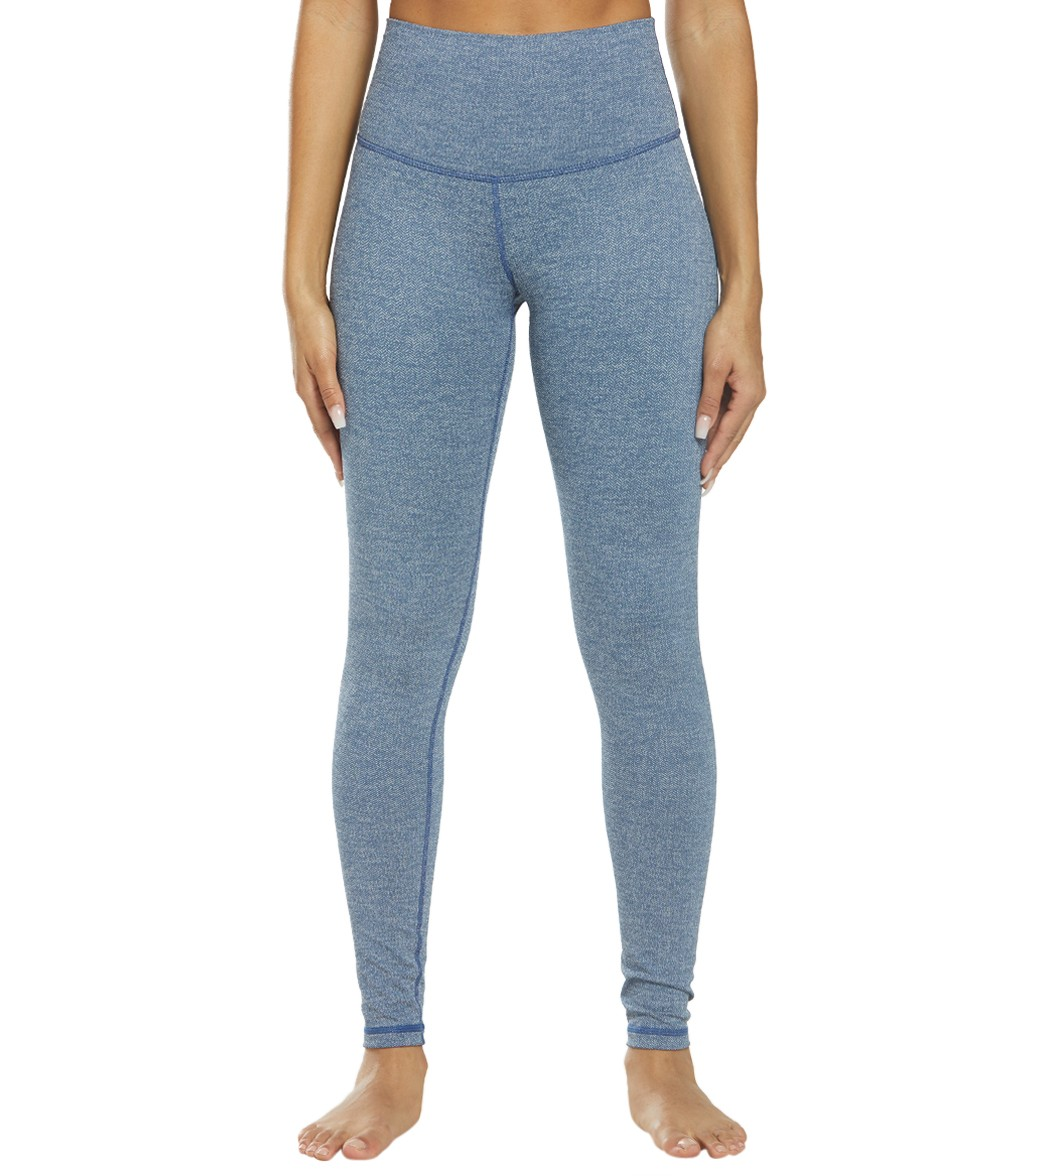 e8f10688f5 DYI Herringbone Yoga Leggings at YogaOutlet.com - Free Shipping